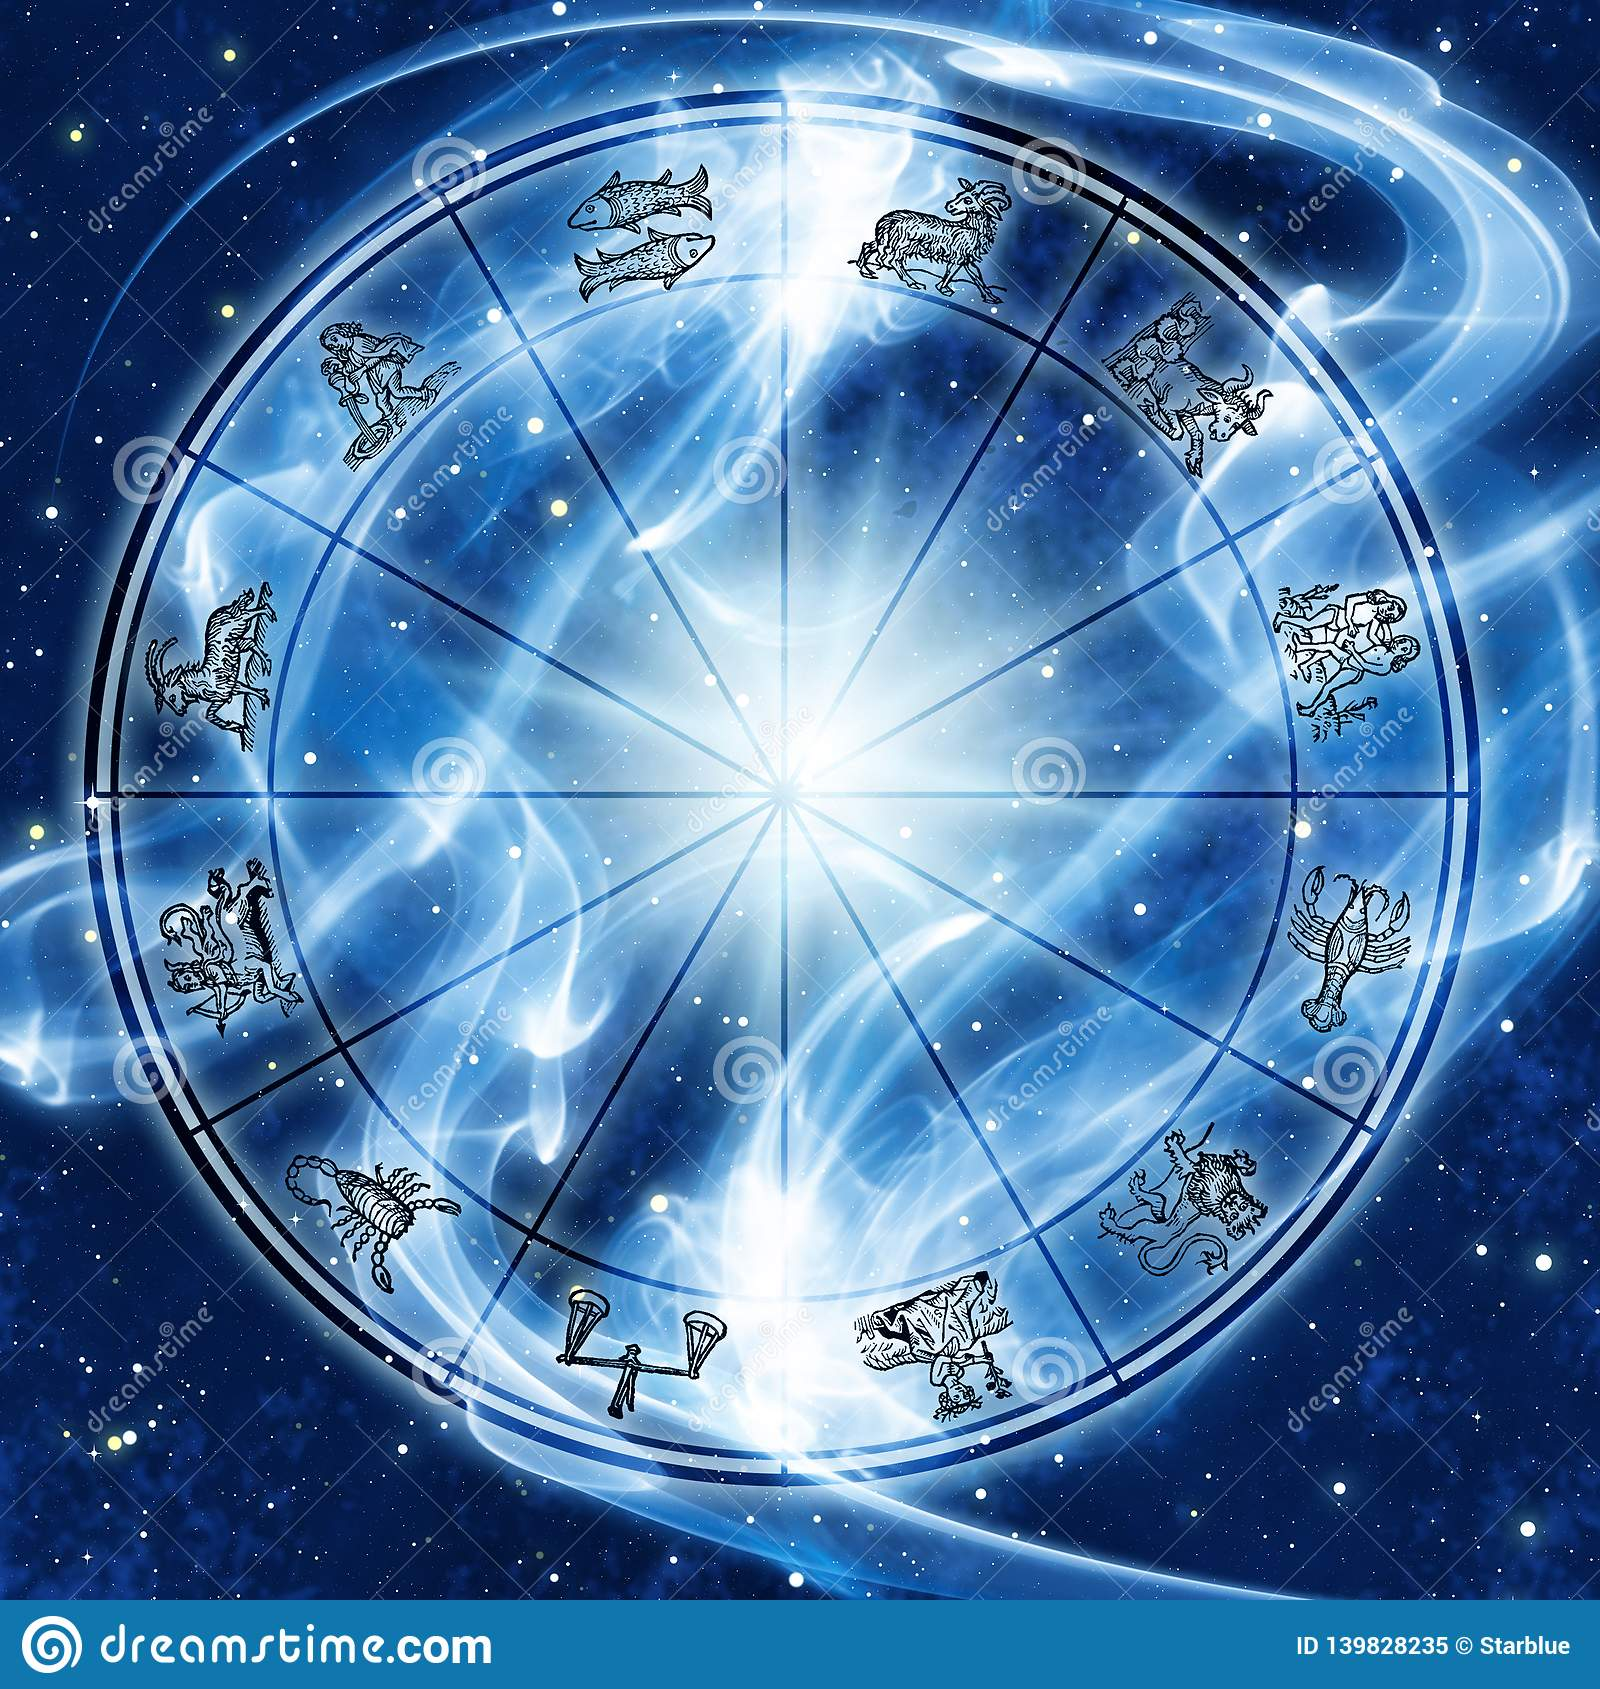 Mystical magic zodiac wheel with stars and Universe like astrology concept